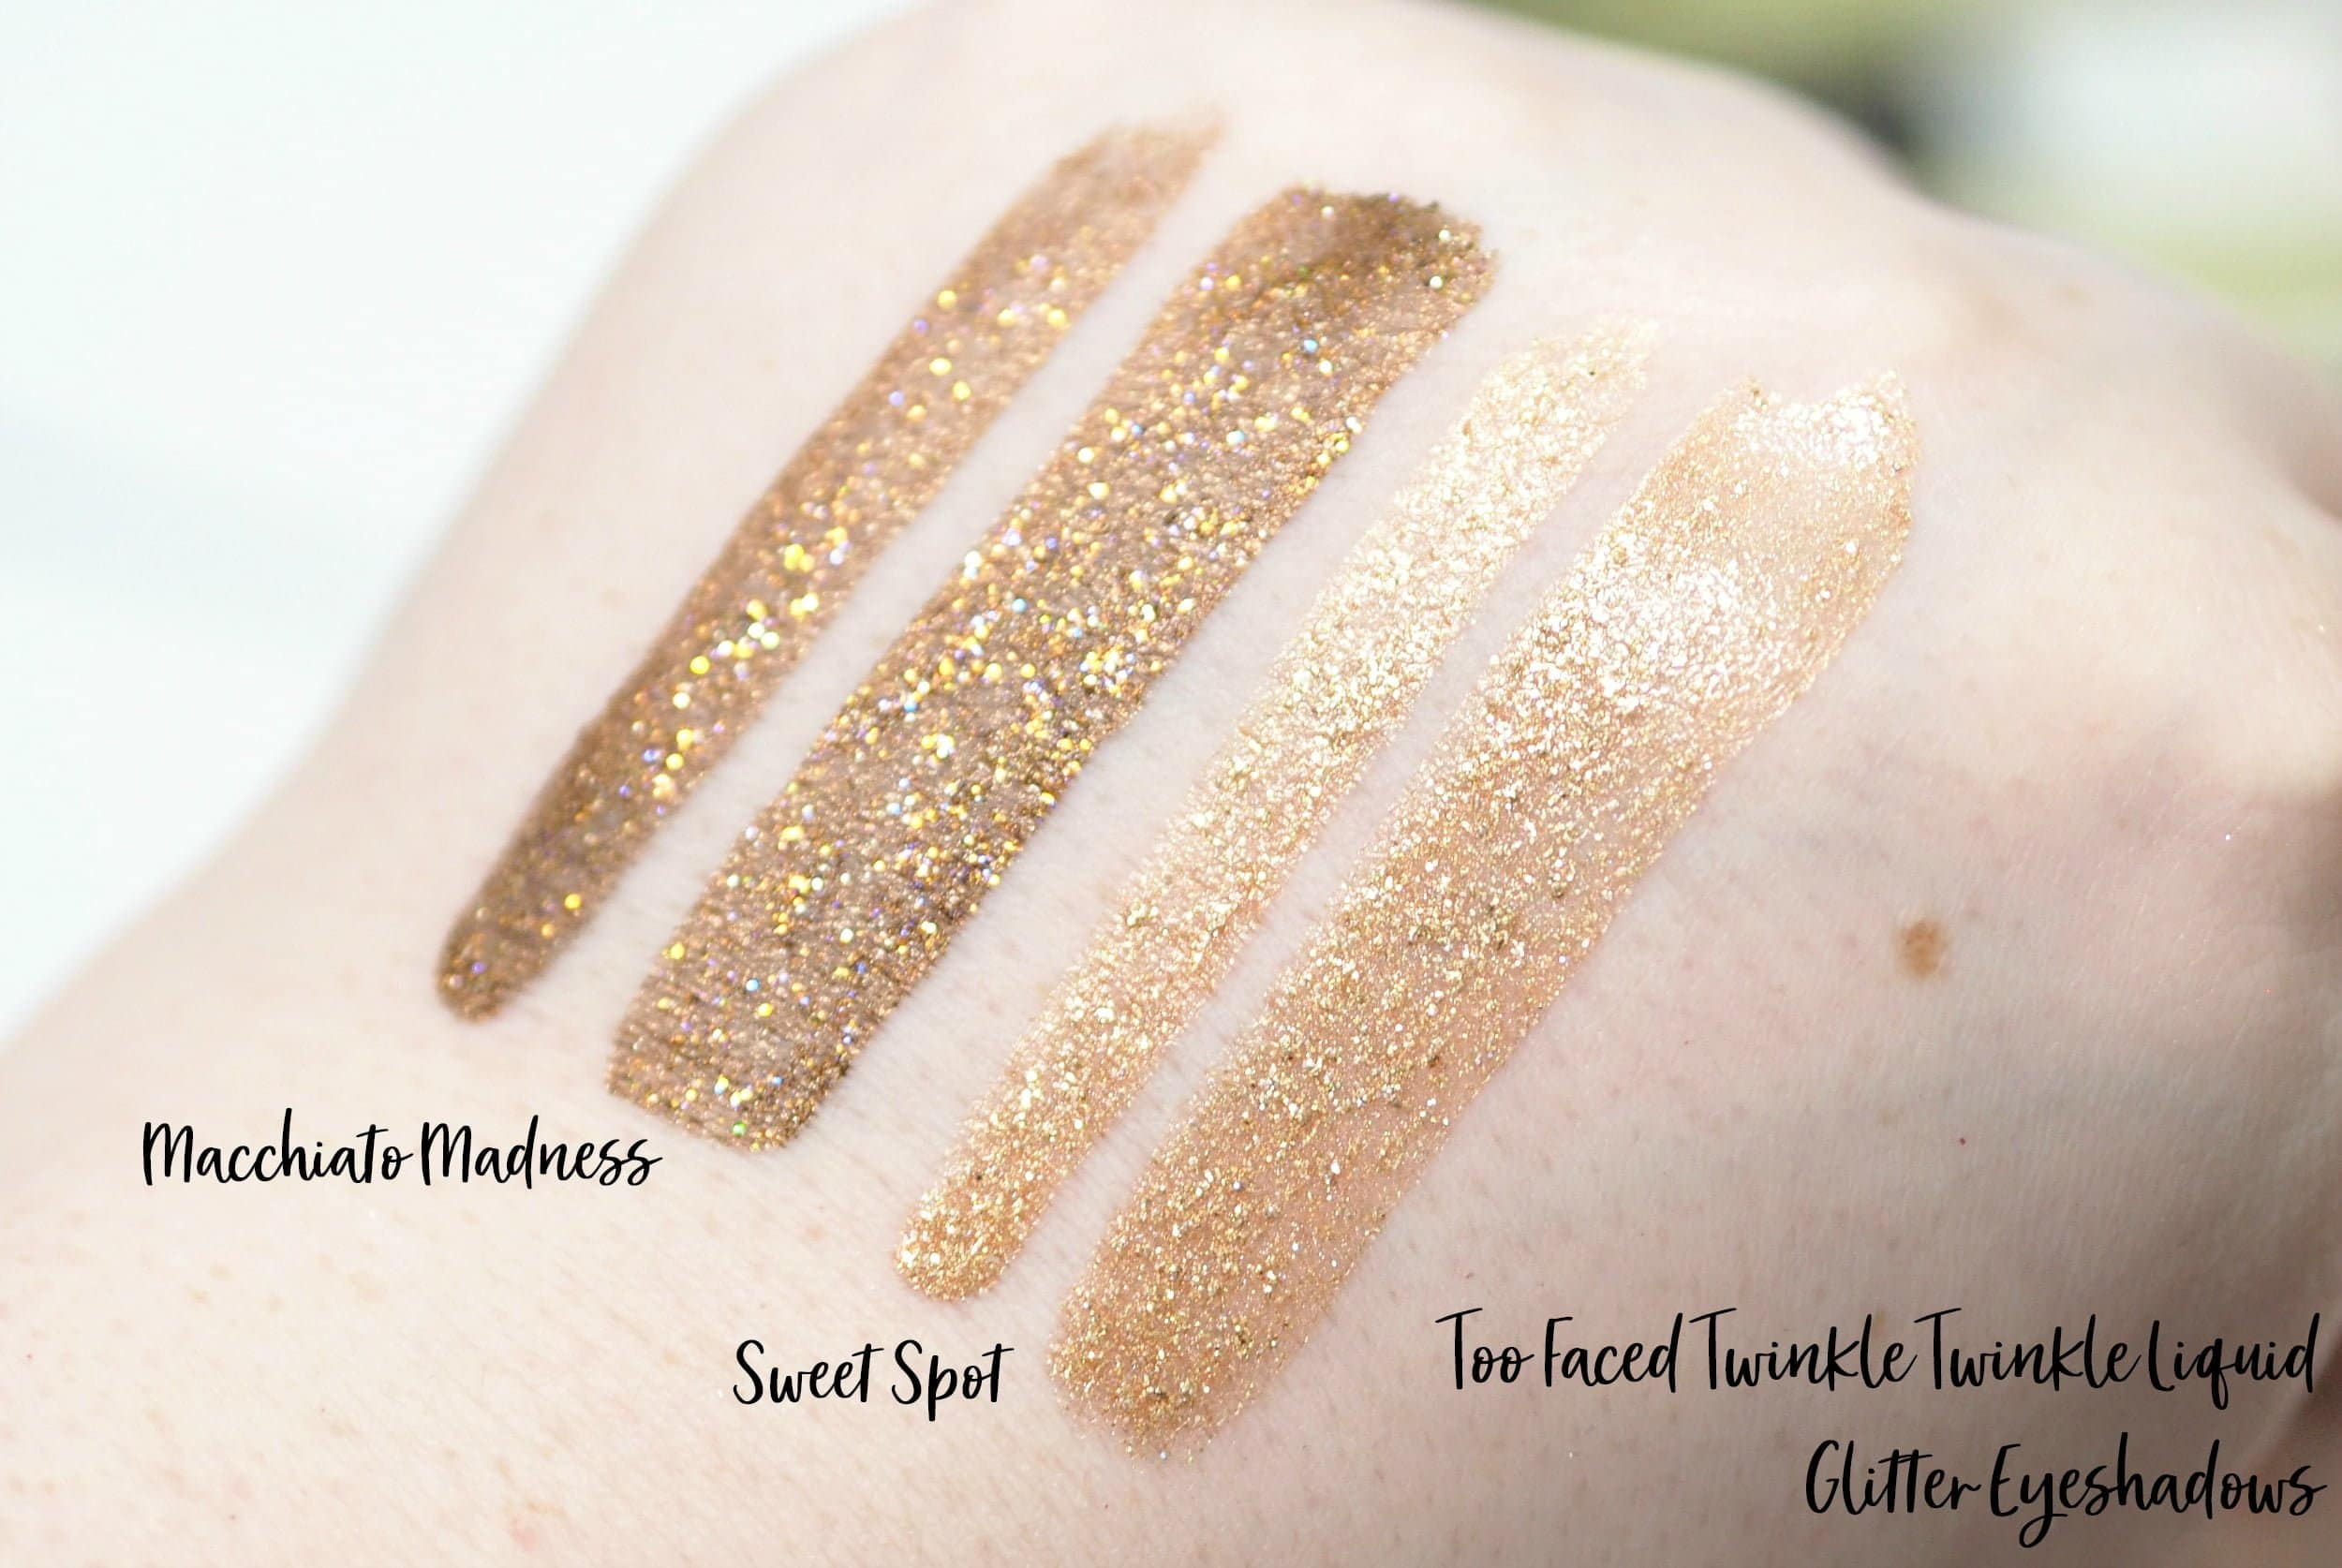 Too Faced Tutti Frutti Collection - Review and Swatches of the It's Bananas Powder, Twinkle Twinkle Glitter Eyeshadows, Juicy Fruits Lip Glazes, Fresh Squeezed